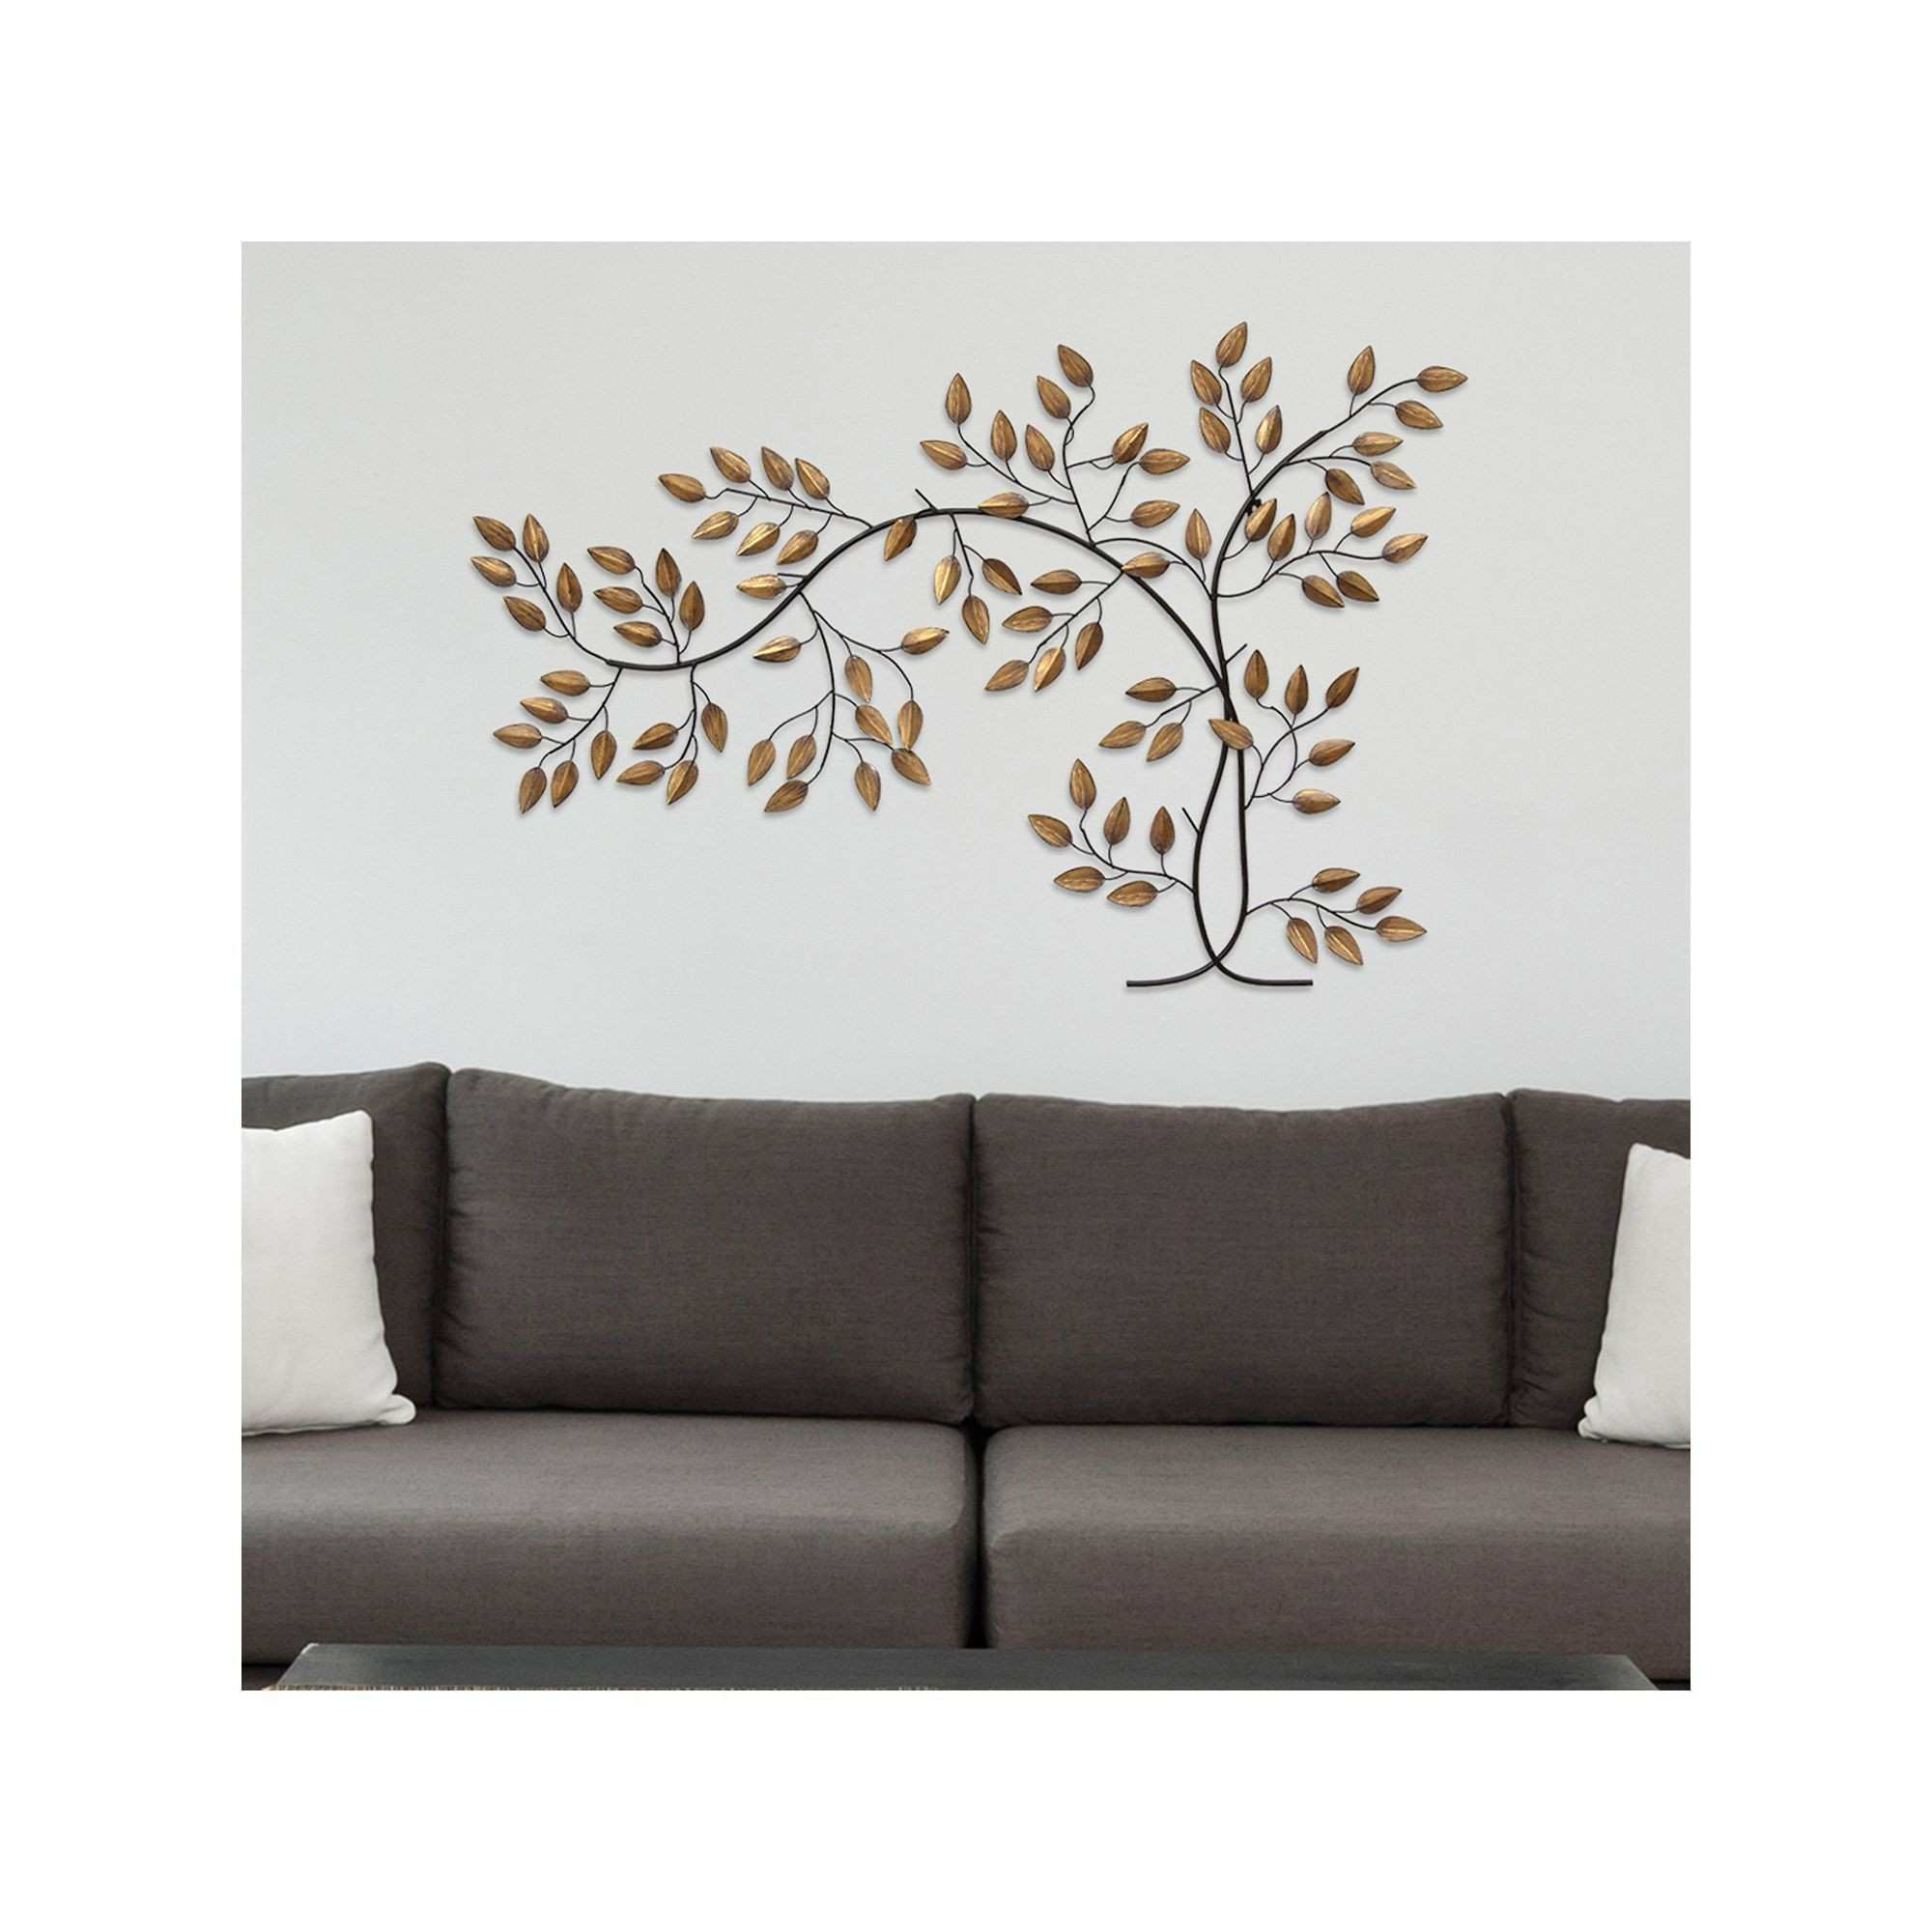 Wall Art Branches New Palm Tree Wall Decals Unique 1 Kirkland Wall